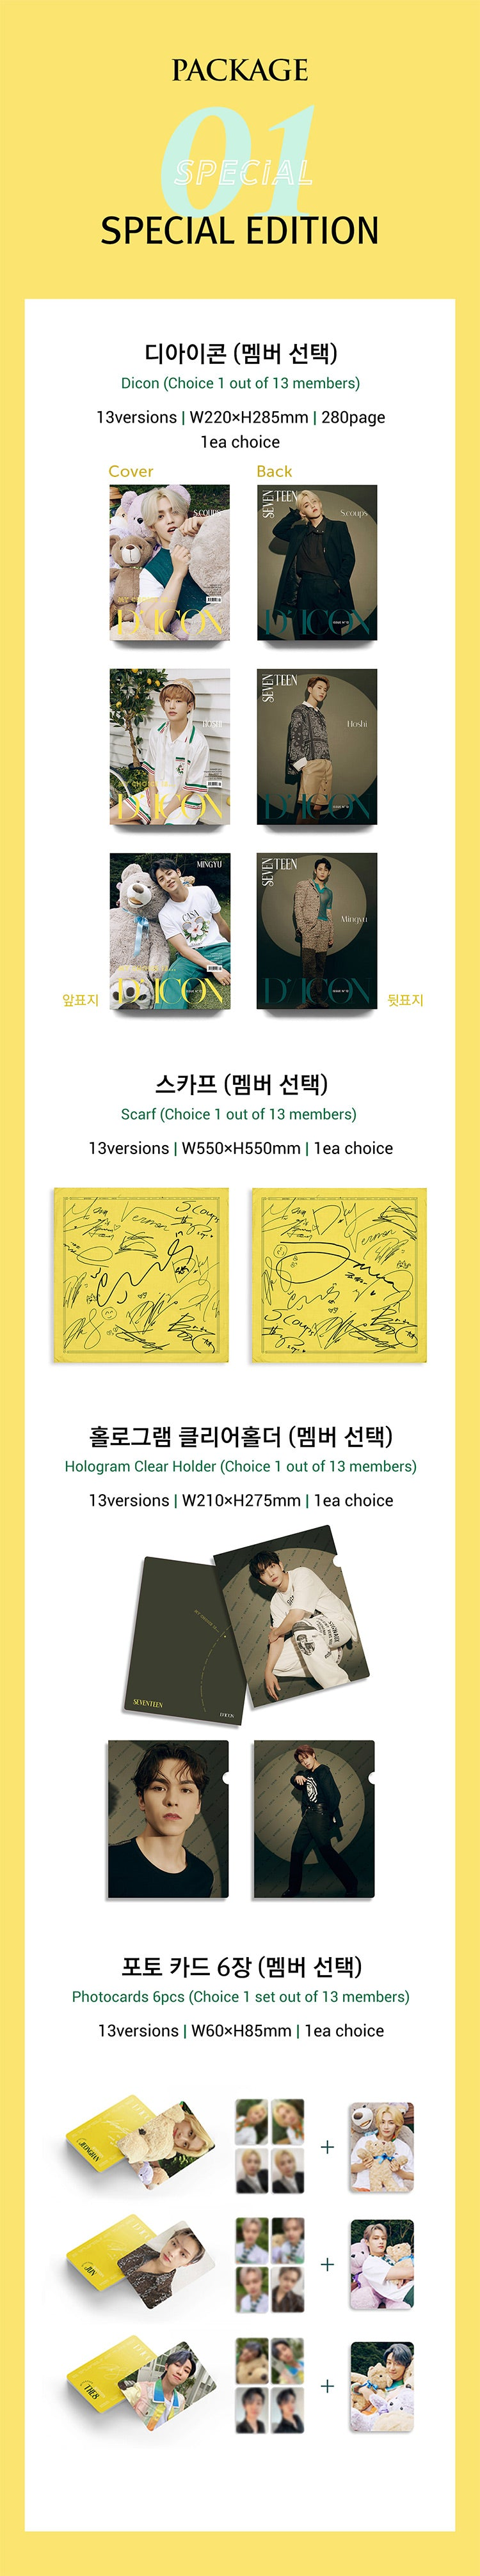 D-ICON Vol.12 [My CHOICE IS... SEVENTEEN] Special Edition